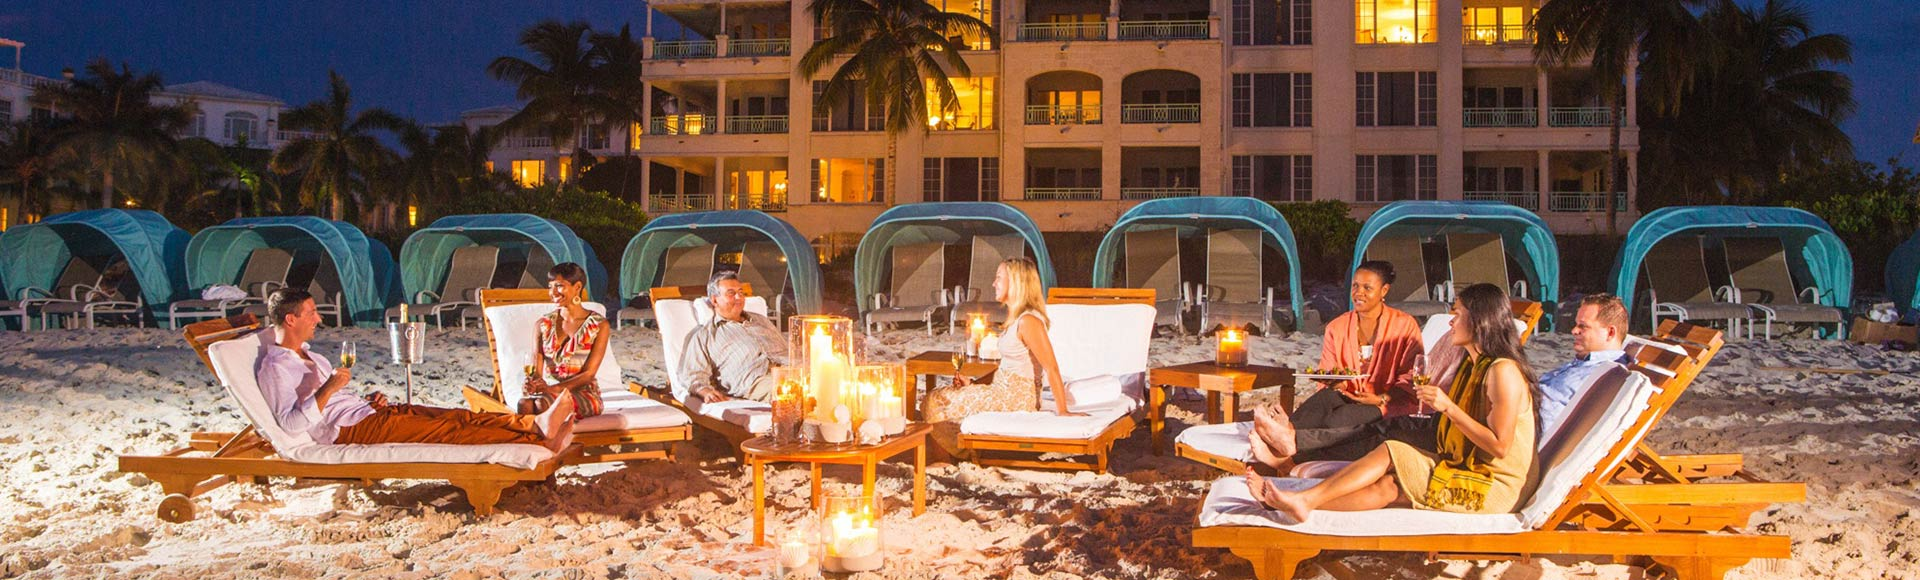 Moonbathing at The Palms is a nighttime experience with mini spa treatments and after-dinner cocktails.